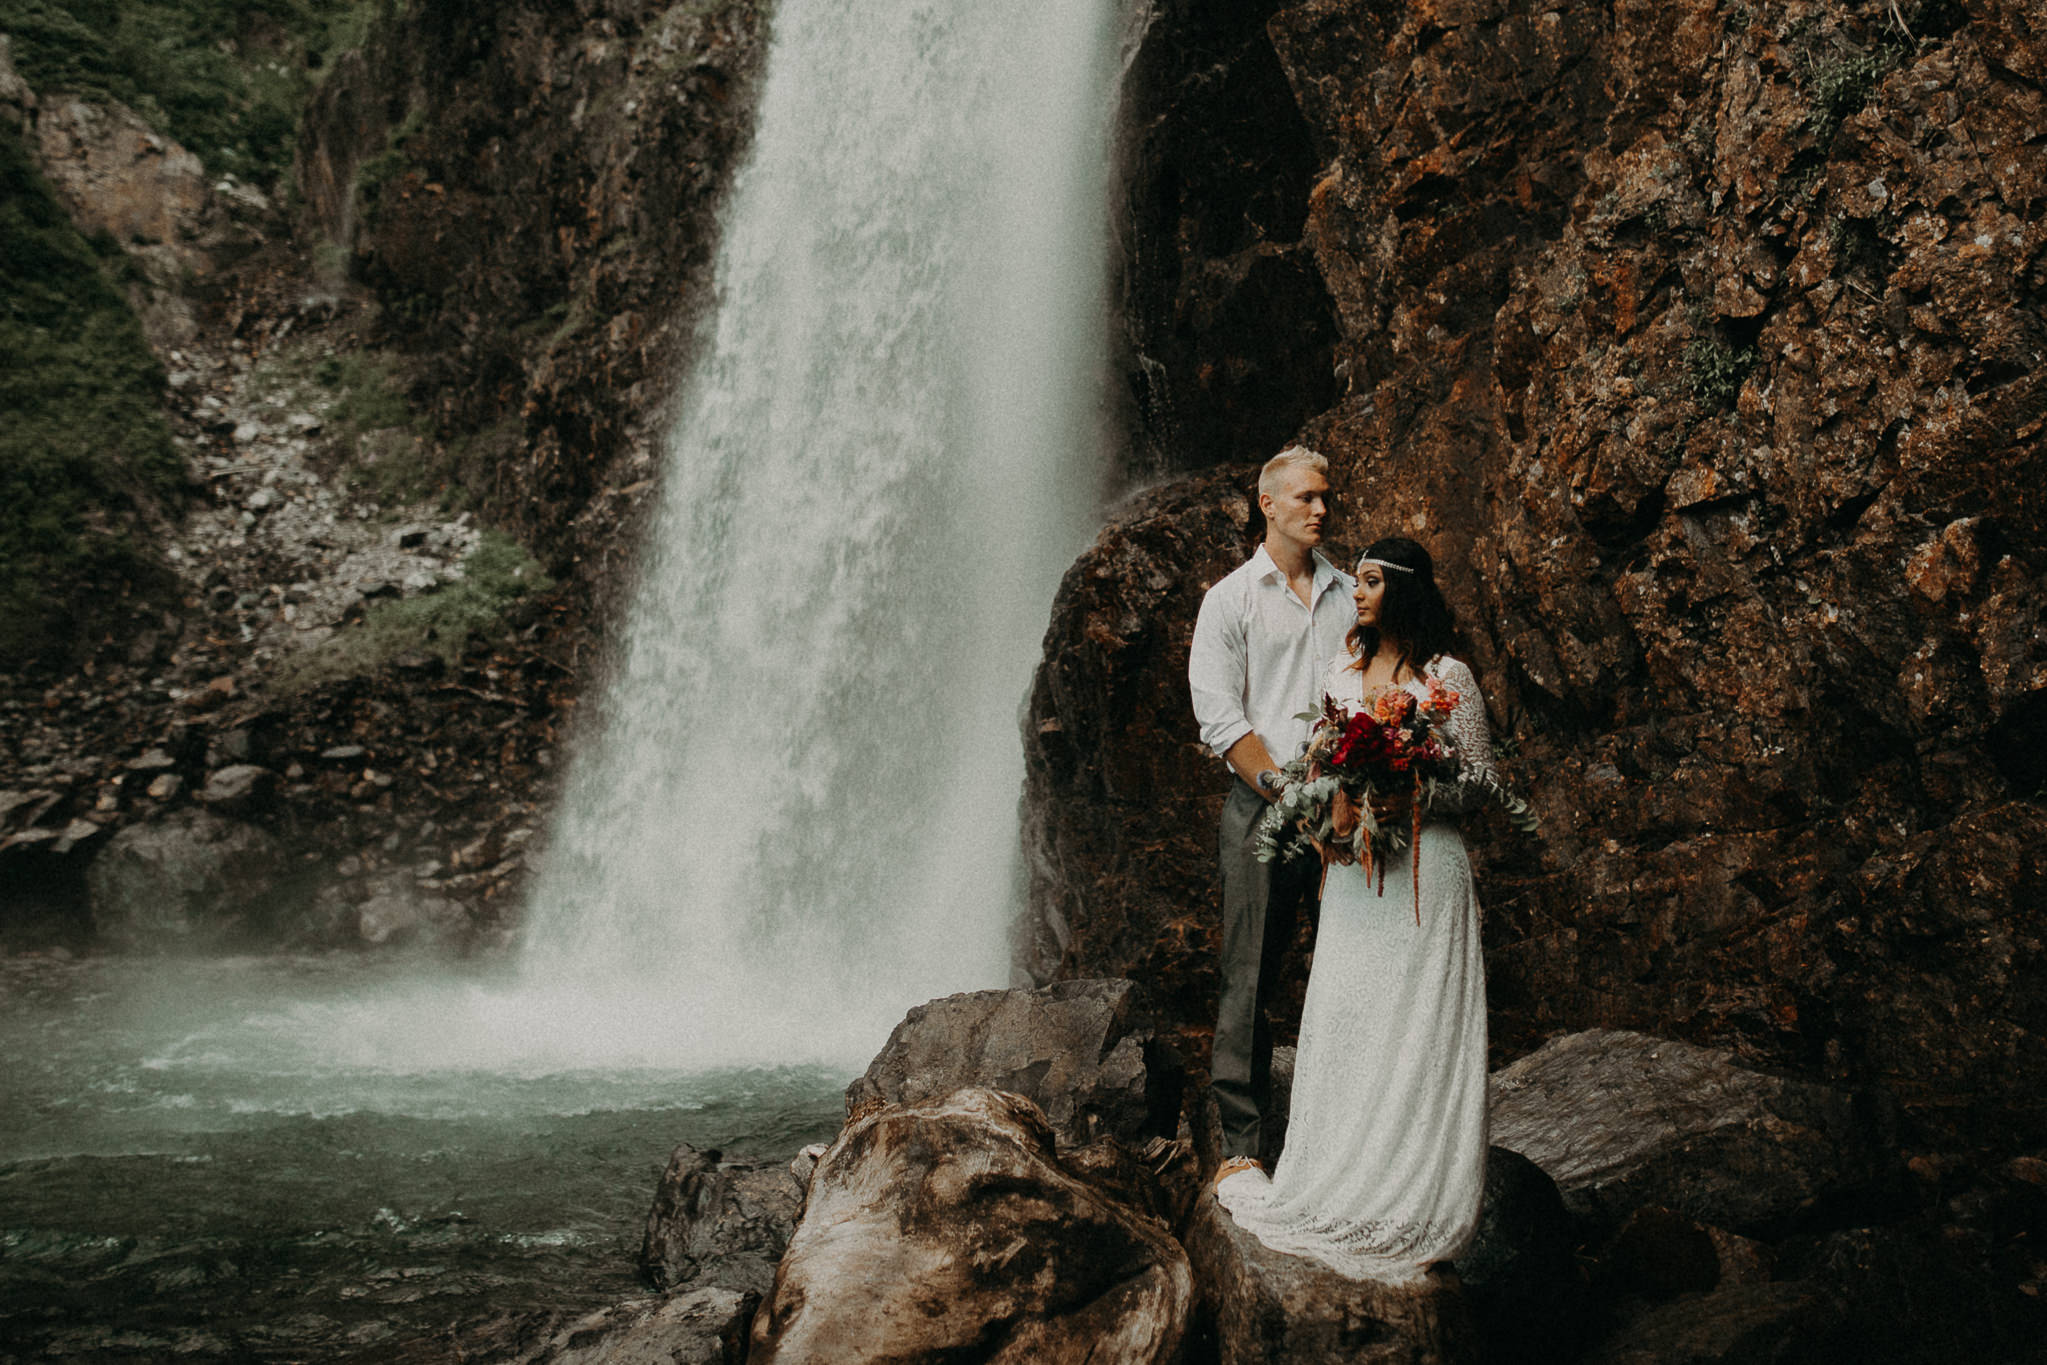 KamraFullerPhotography.StyledBohemianElopement - Seattle Wedding Photographer - Seattle Elopement Photographer - Port Angeles Wedding Photographer - Boho - Bohemian - Waterfall Elopement - Styled Shoot - PNW Wedding Photographer - Earthy Tones - Bohemian Elopement -204.jpg